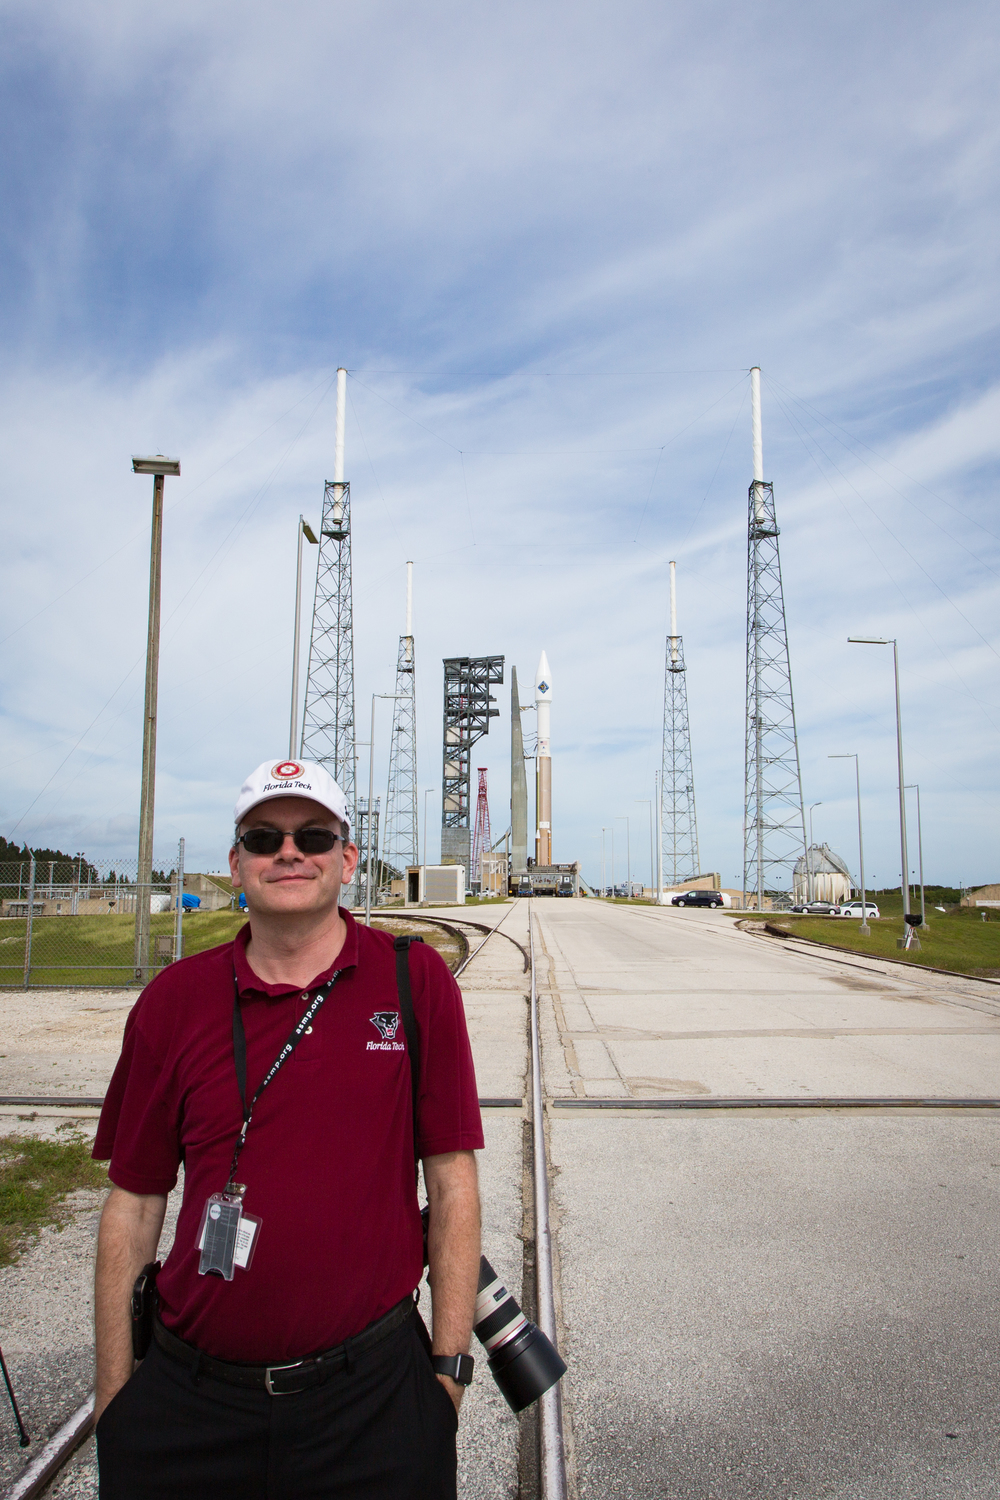 Michael Seeley (me, again) with an AtlasV rocket (and stuff) behind me. That's the OA-4 rocket, to be launched by United Launch Alliance a few days after this picture was taken.